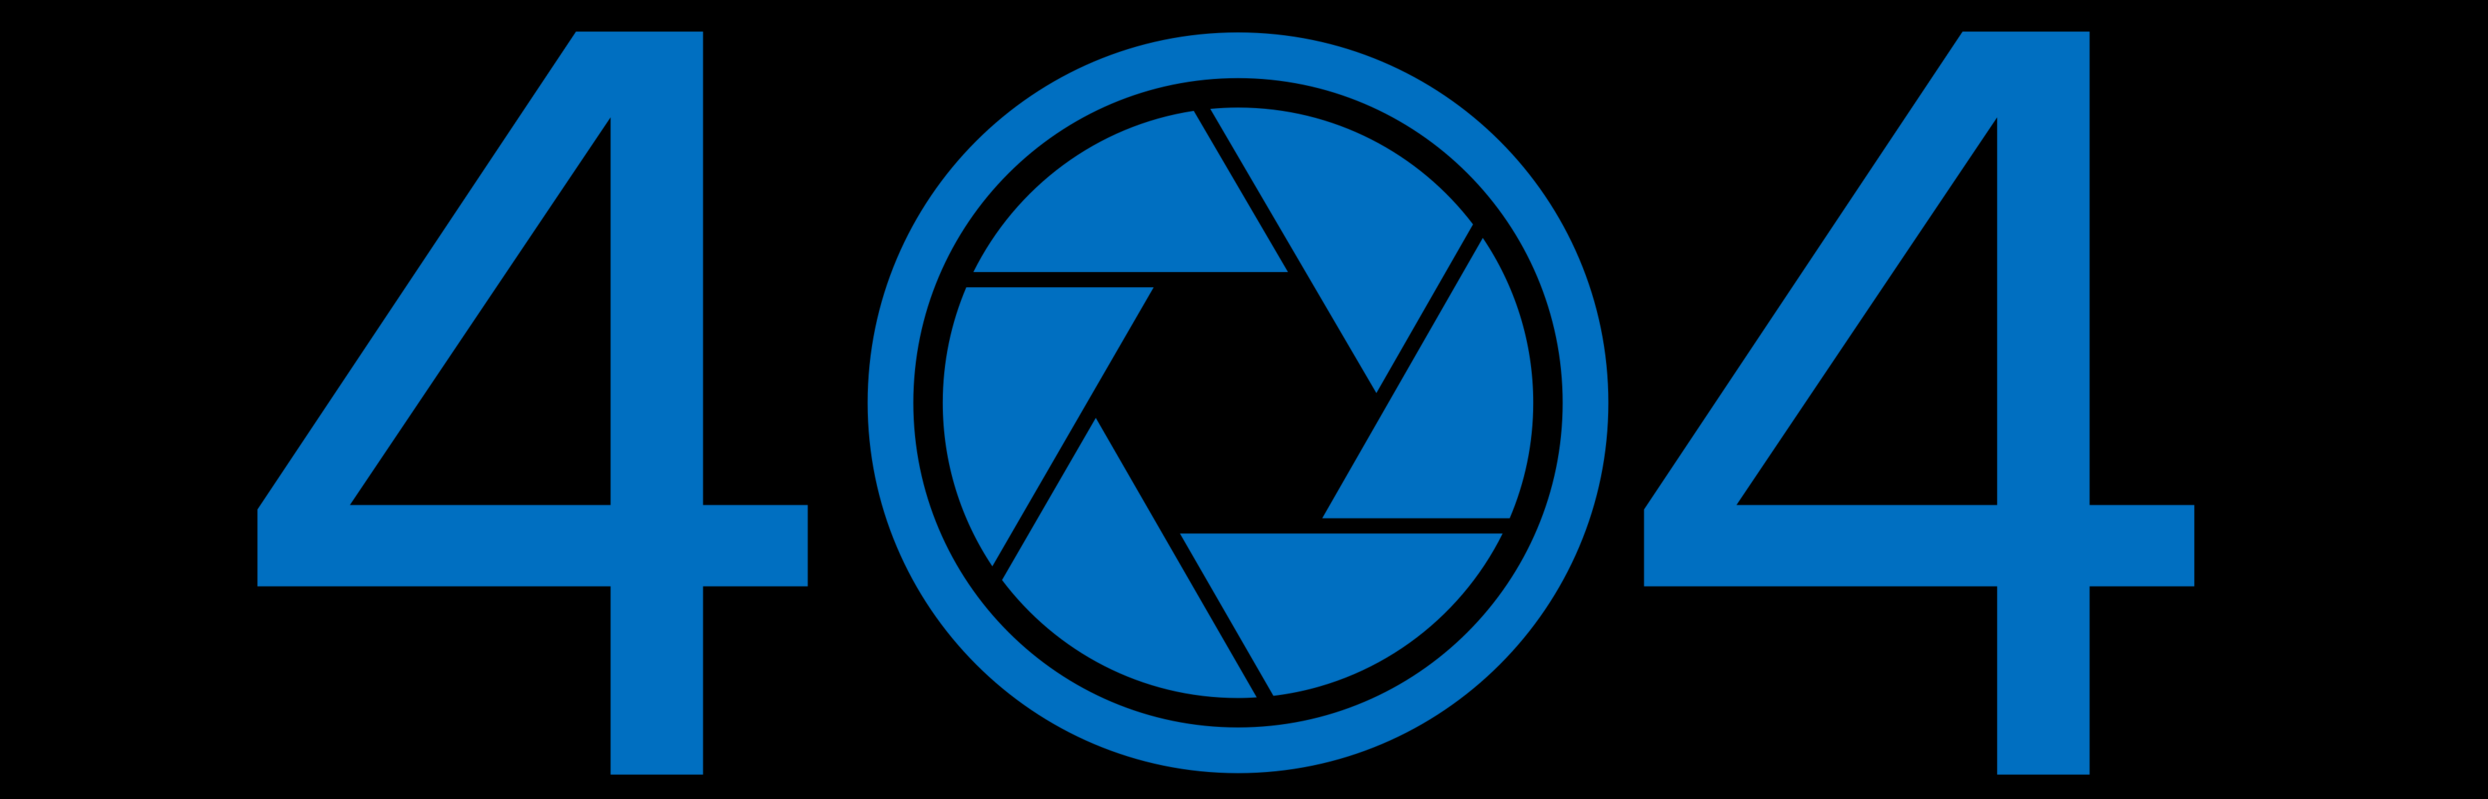 Ashcraft_404_Blue.png